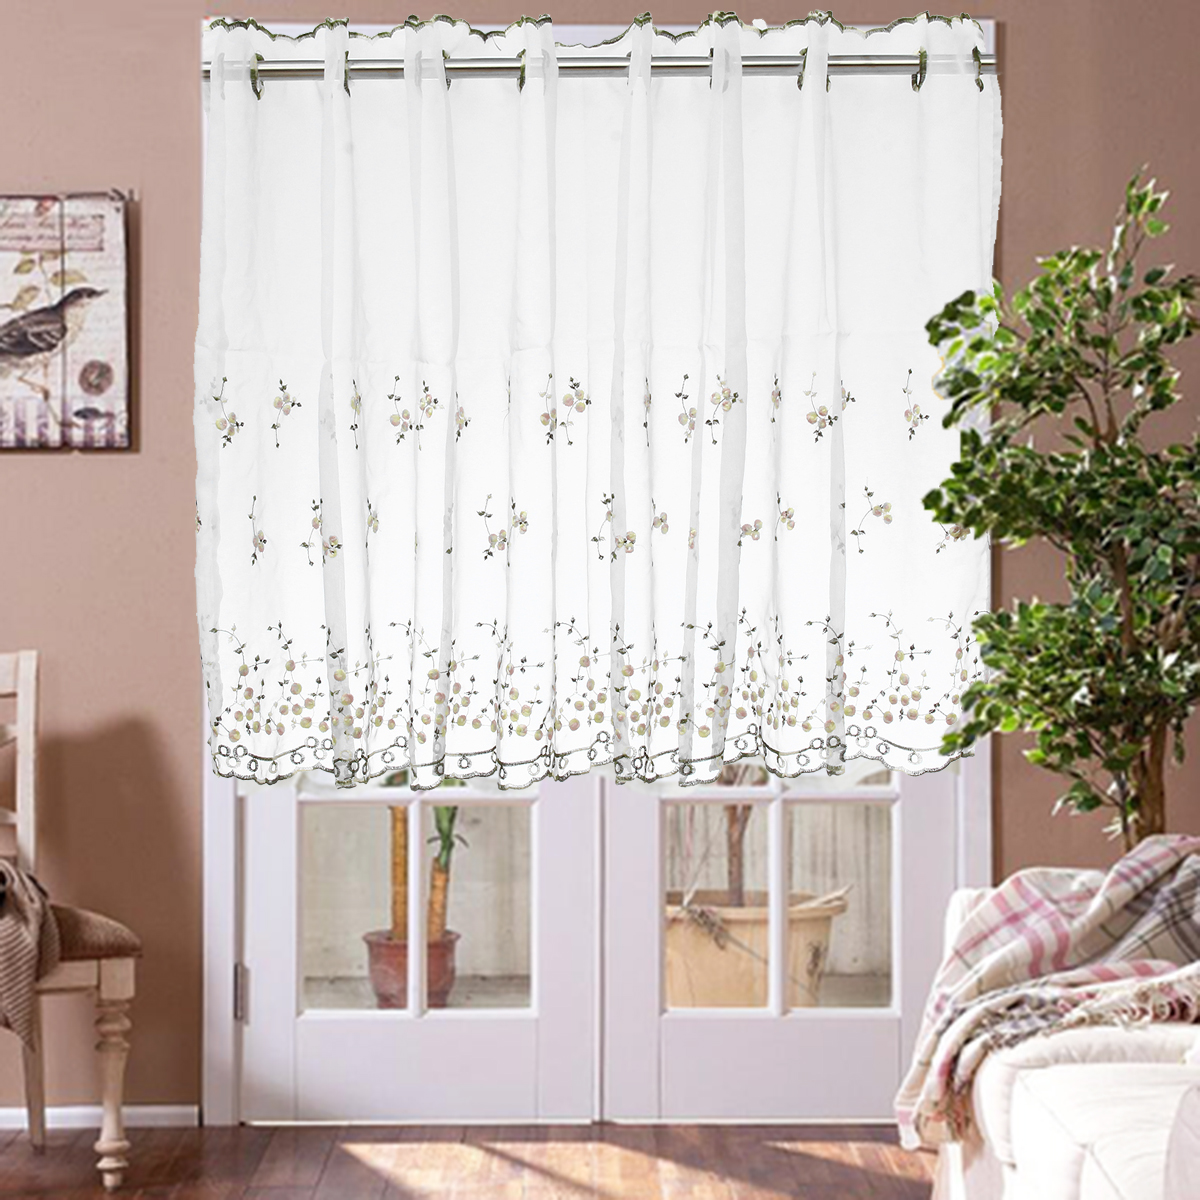 Remarkable Details About Kitchen Cafe Curtain Country Embroidery Window Sheer Voile Short Panel Valance Home Interior And Landscaping Palasignezvosmurscom